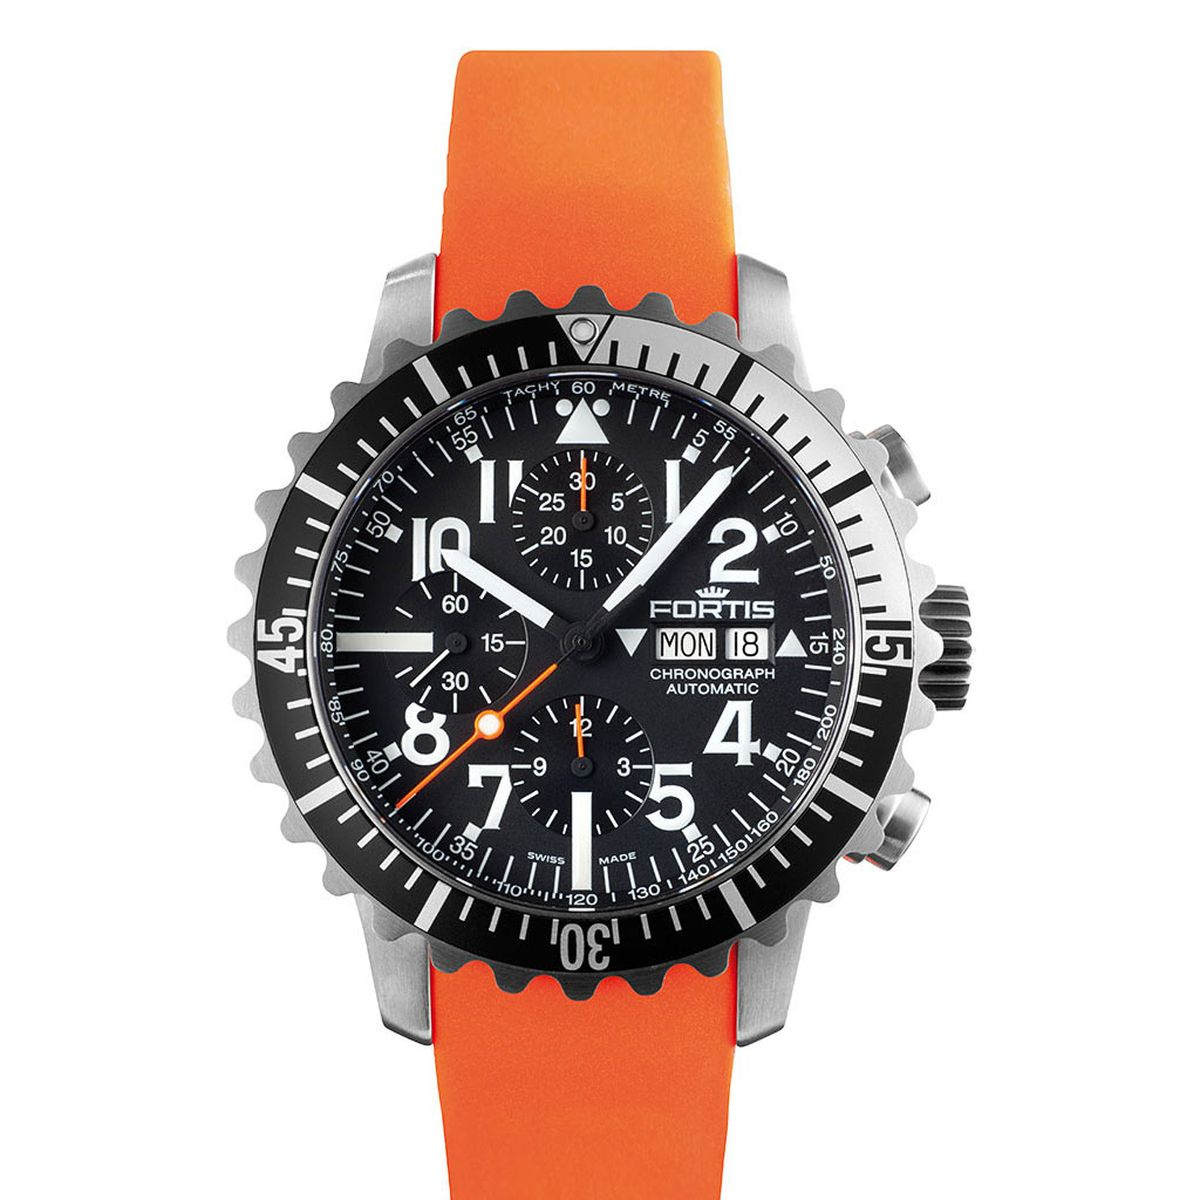 The Top Five Fortis Watches for Men